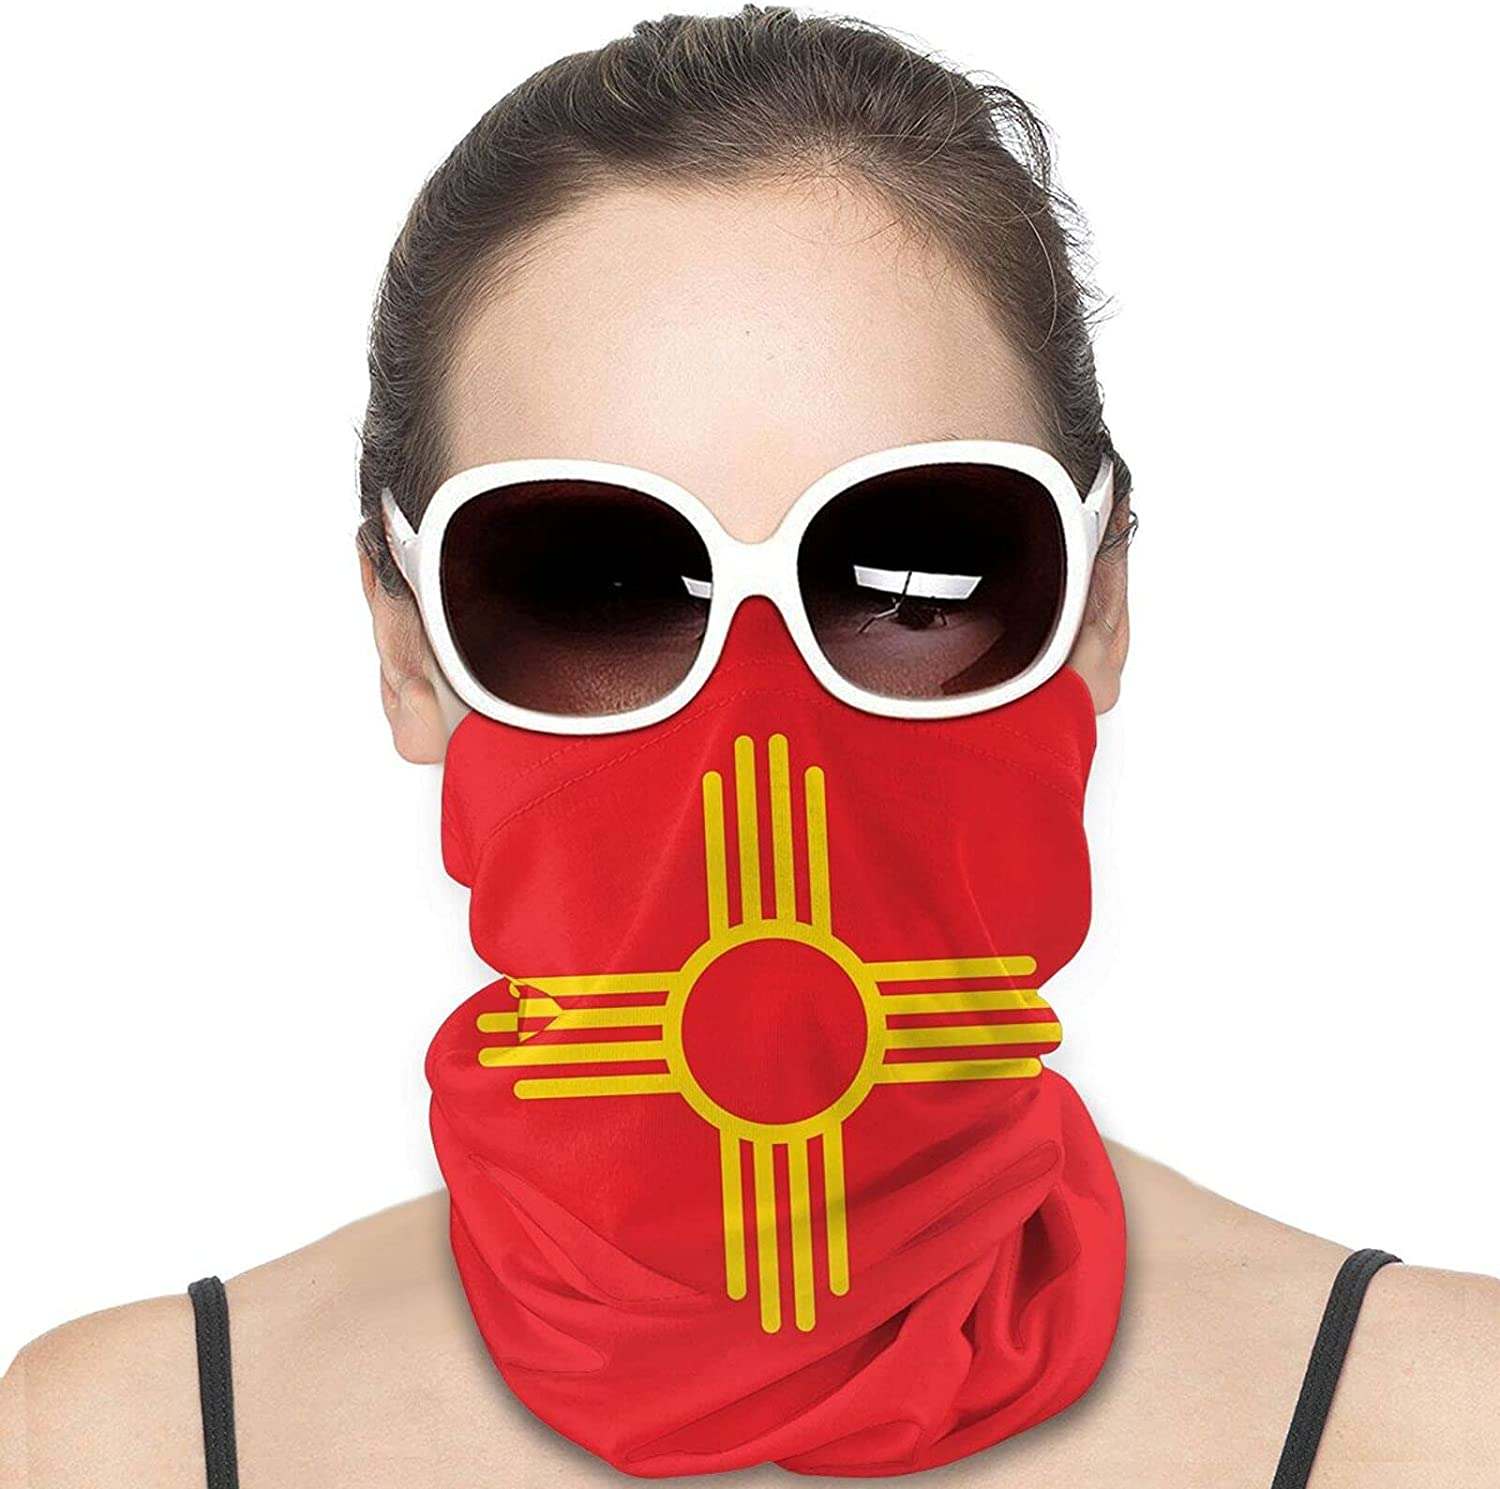 Zia Sun Round Neck Gaiter Bandnas Face Cover Uv Protection Prevent bask in Ice Scarf Headbands Perfect for Motorcycle Cycling Running Festival Raves Outdoors